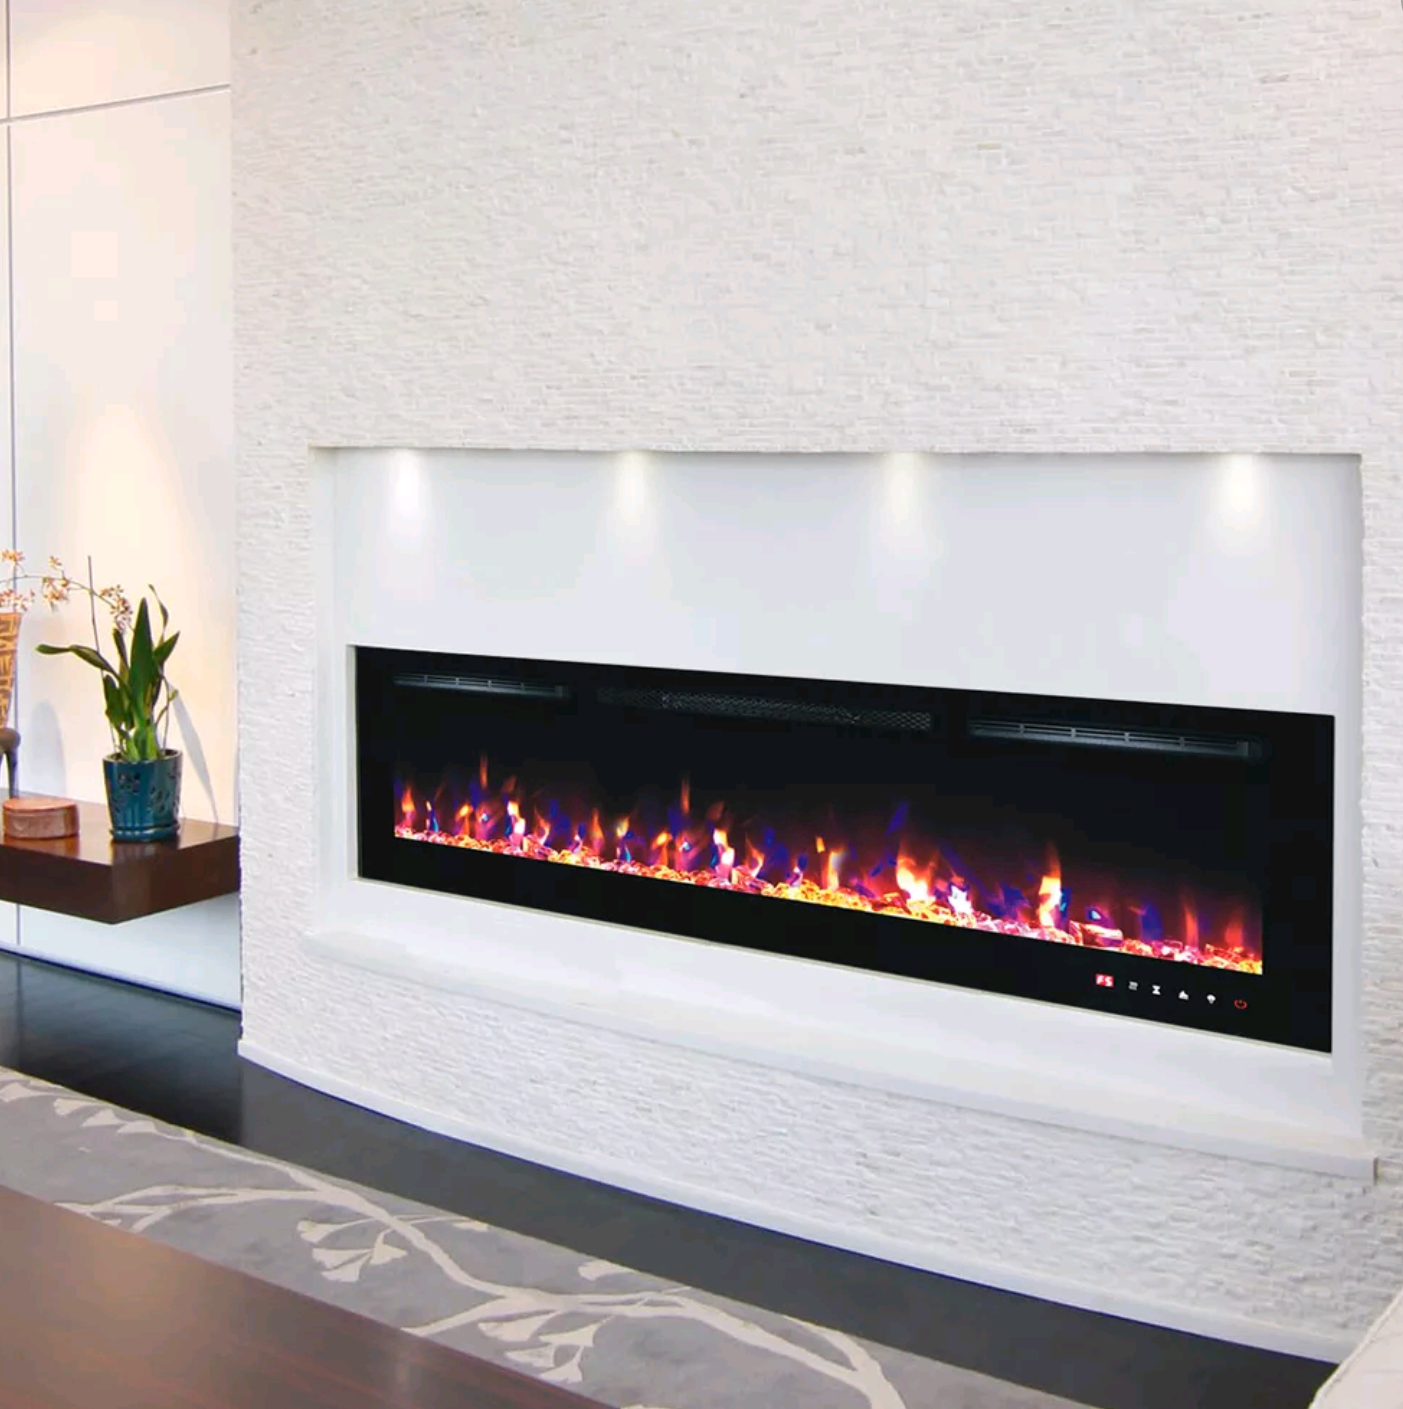 Branded 72 Inch Led Flames Modern Black White Glass Wall